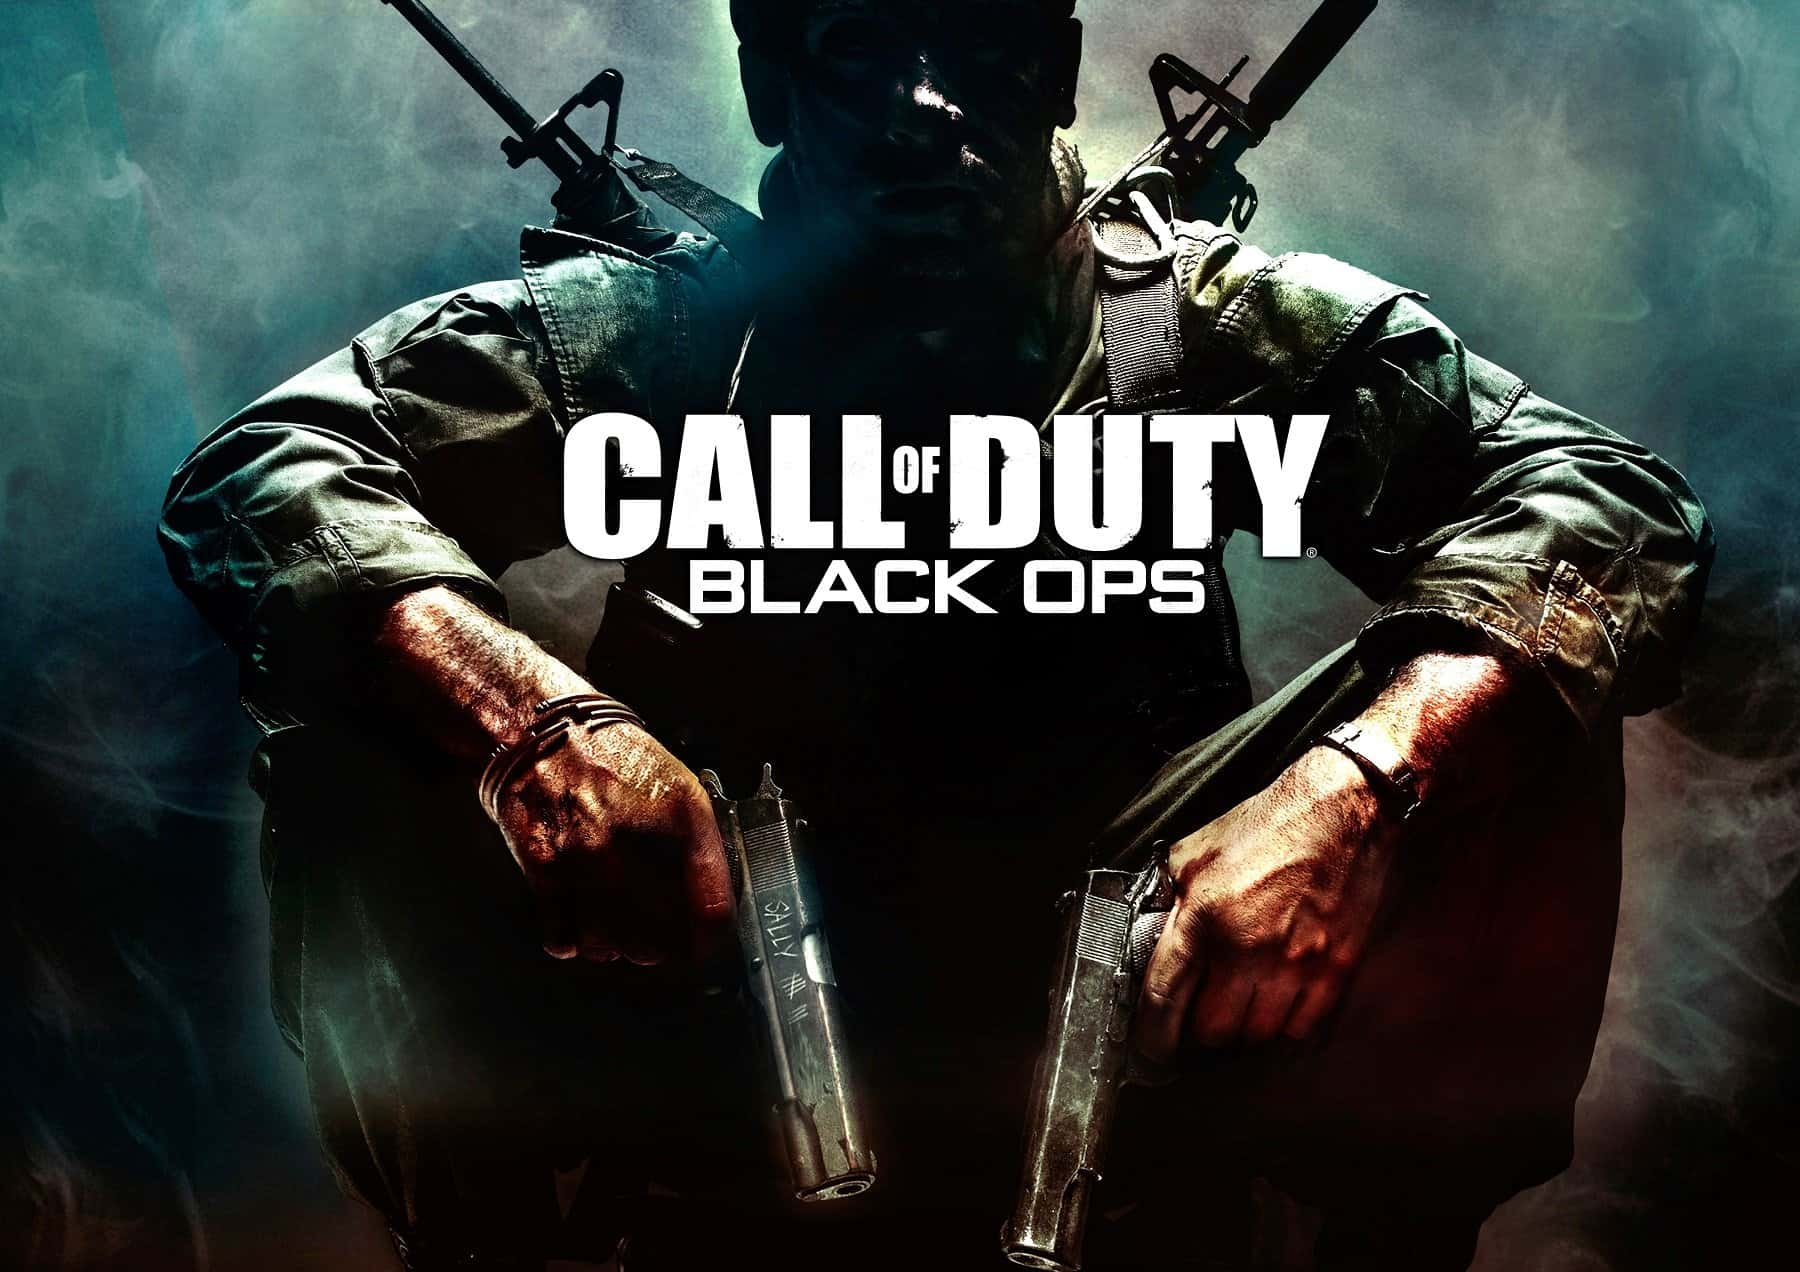 PC Call of Duty Black Ops SaveGame 100%